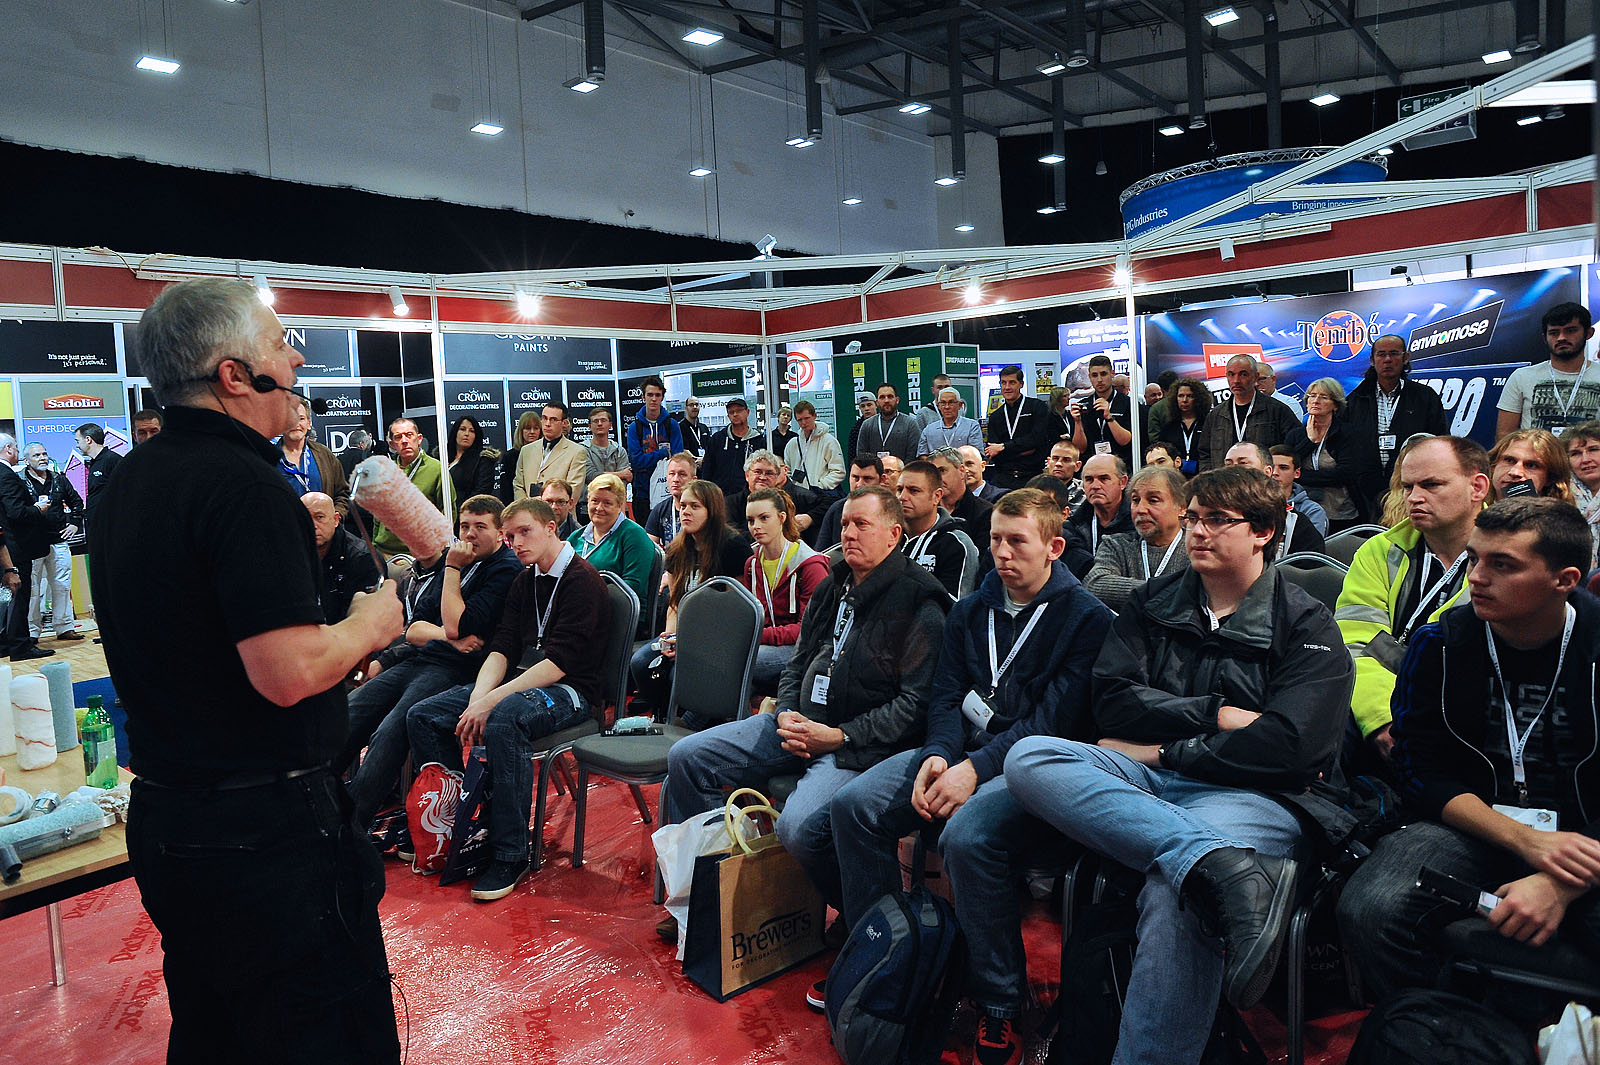 National Painting and Decorating Show 2015 at the Rocoh Arena Coventry